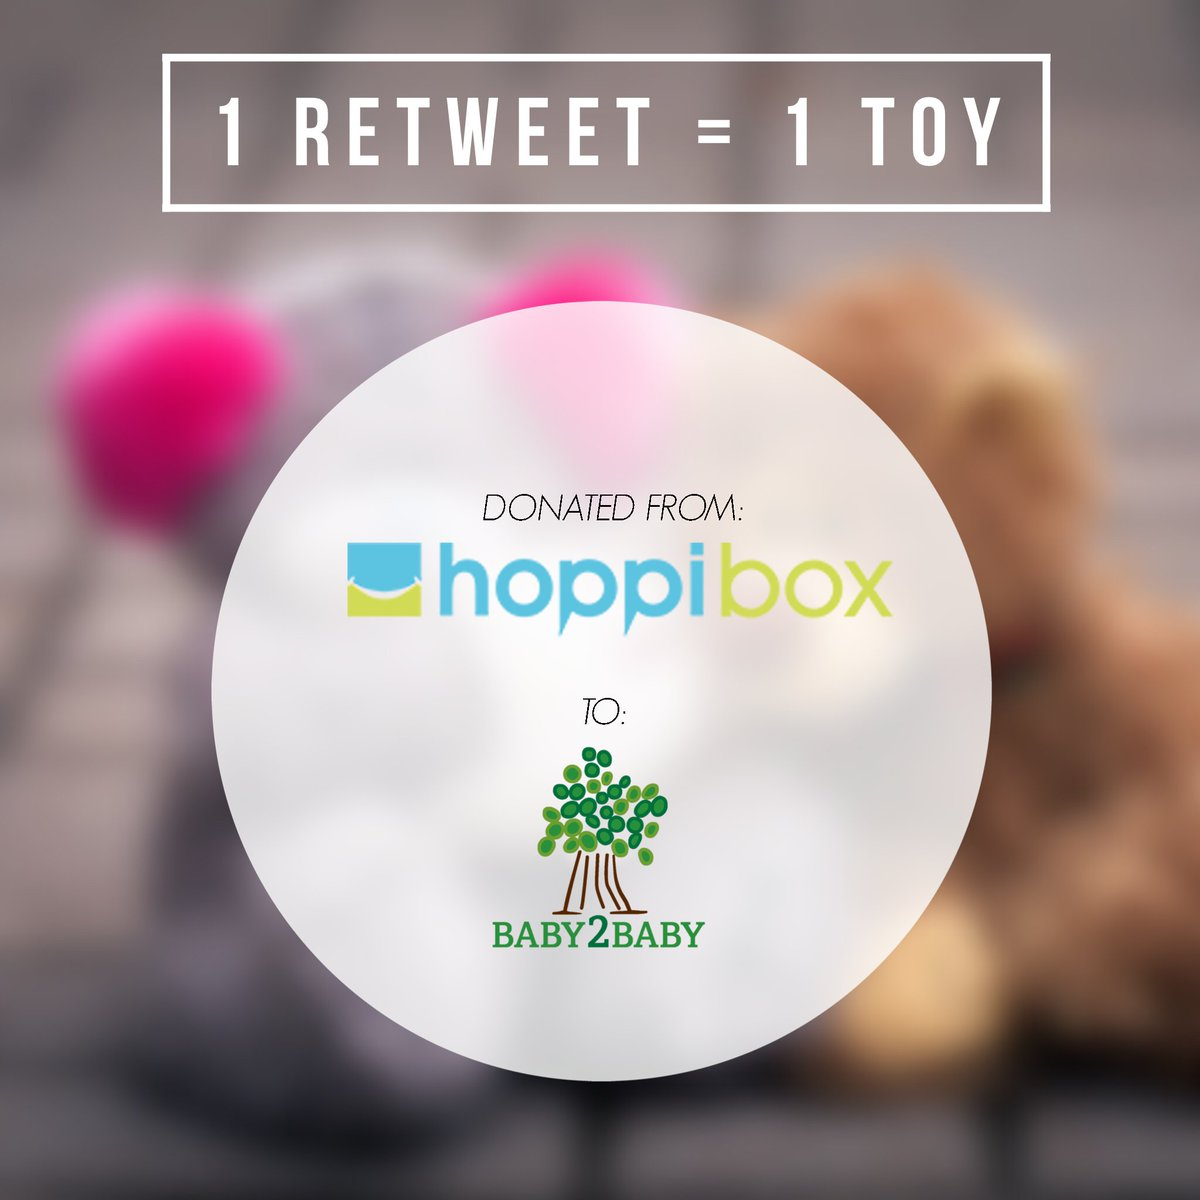 For every RETWEET @hoppibox will donate to 1 new toy to a child @baby2baby serves! Pls RT today! #givingback https://t.co/vrslYtbTuF